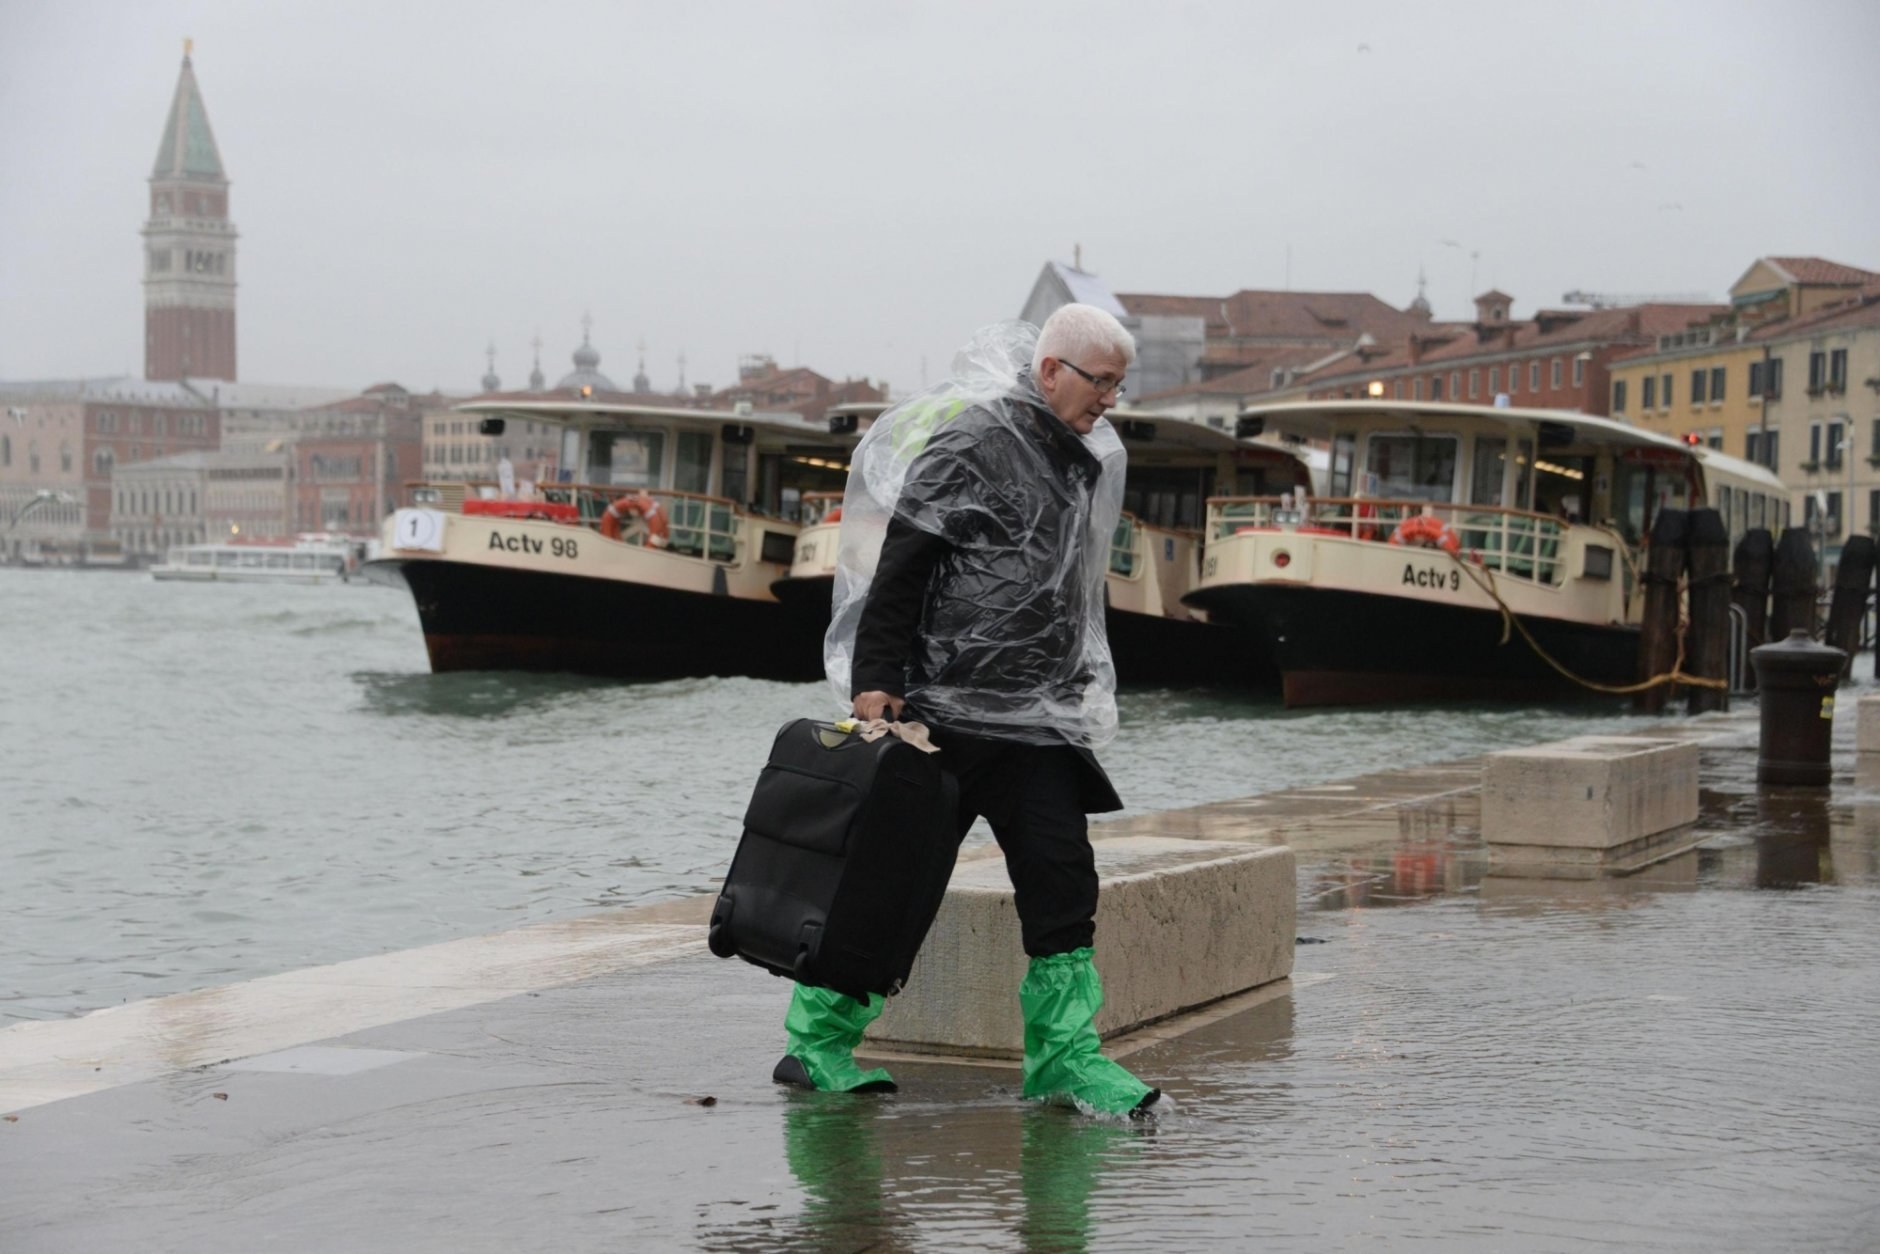 A man walks in a flooded street of Venice, Italy, backdropped by St. Marks Basilica bell tower, Monday, Oct. 29, 2018, as, according to city officials, 70 percent of the lagoon city has been flooded by waters rising 149 centimeters (more than 58 1/2 inches) above sea level. Venice frequently floods when high winds push in water from the lagoon, but Monday's levels are exceptional and forecast to rise even higher, to 160 centimeters (nearly 63 inches) by mid-afternoon. (Andrea Merola/ANSA via AP)